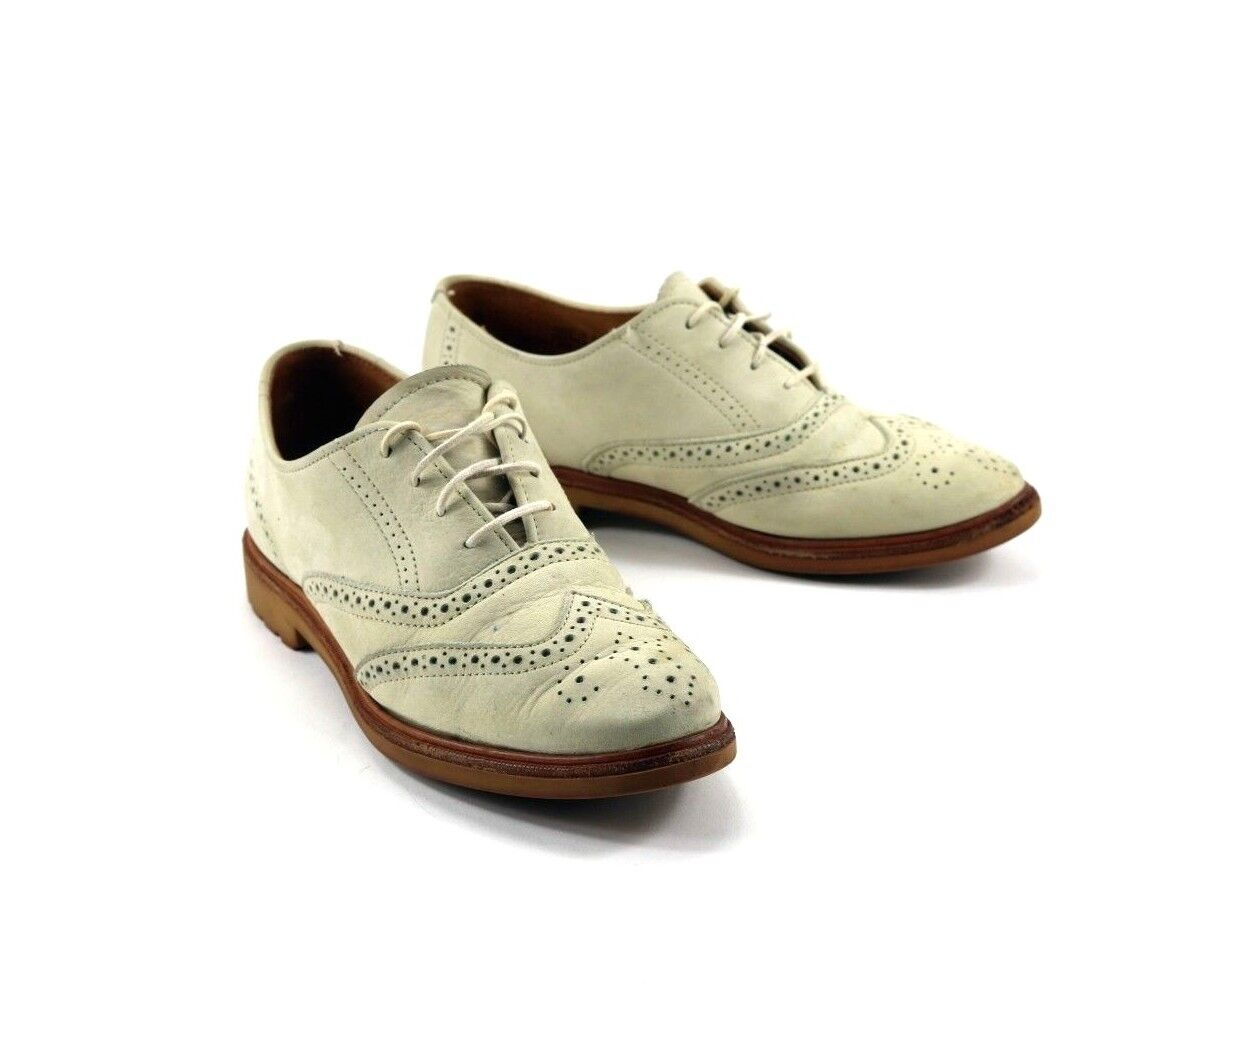 G.H. Bass & Co. Men's Saddle & Bucs Oxford Wingtip Leather Saddle Shoes Size 7.5